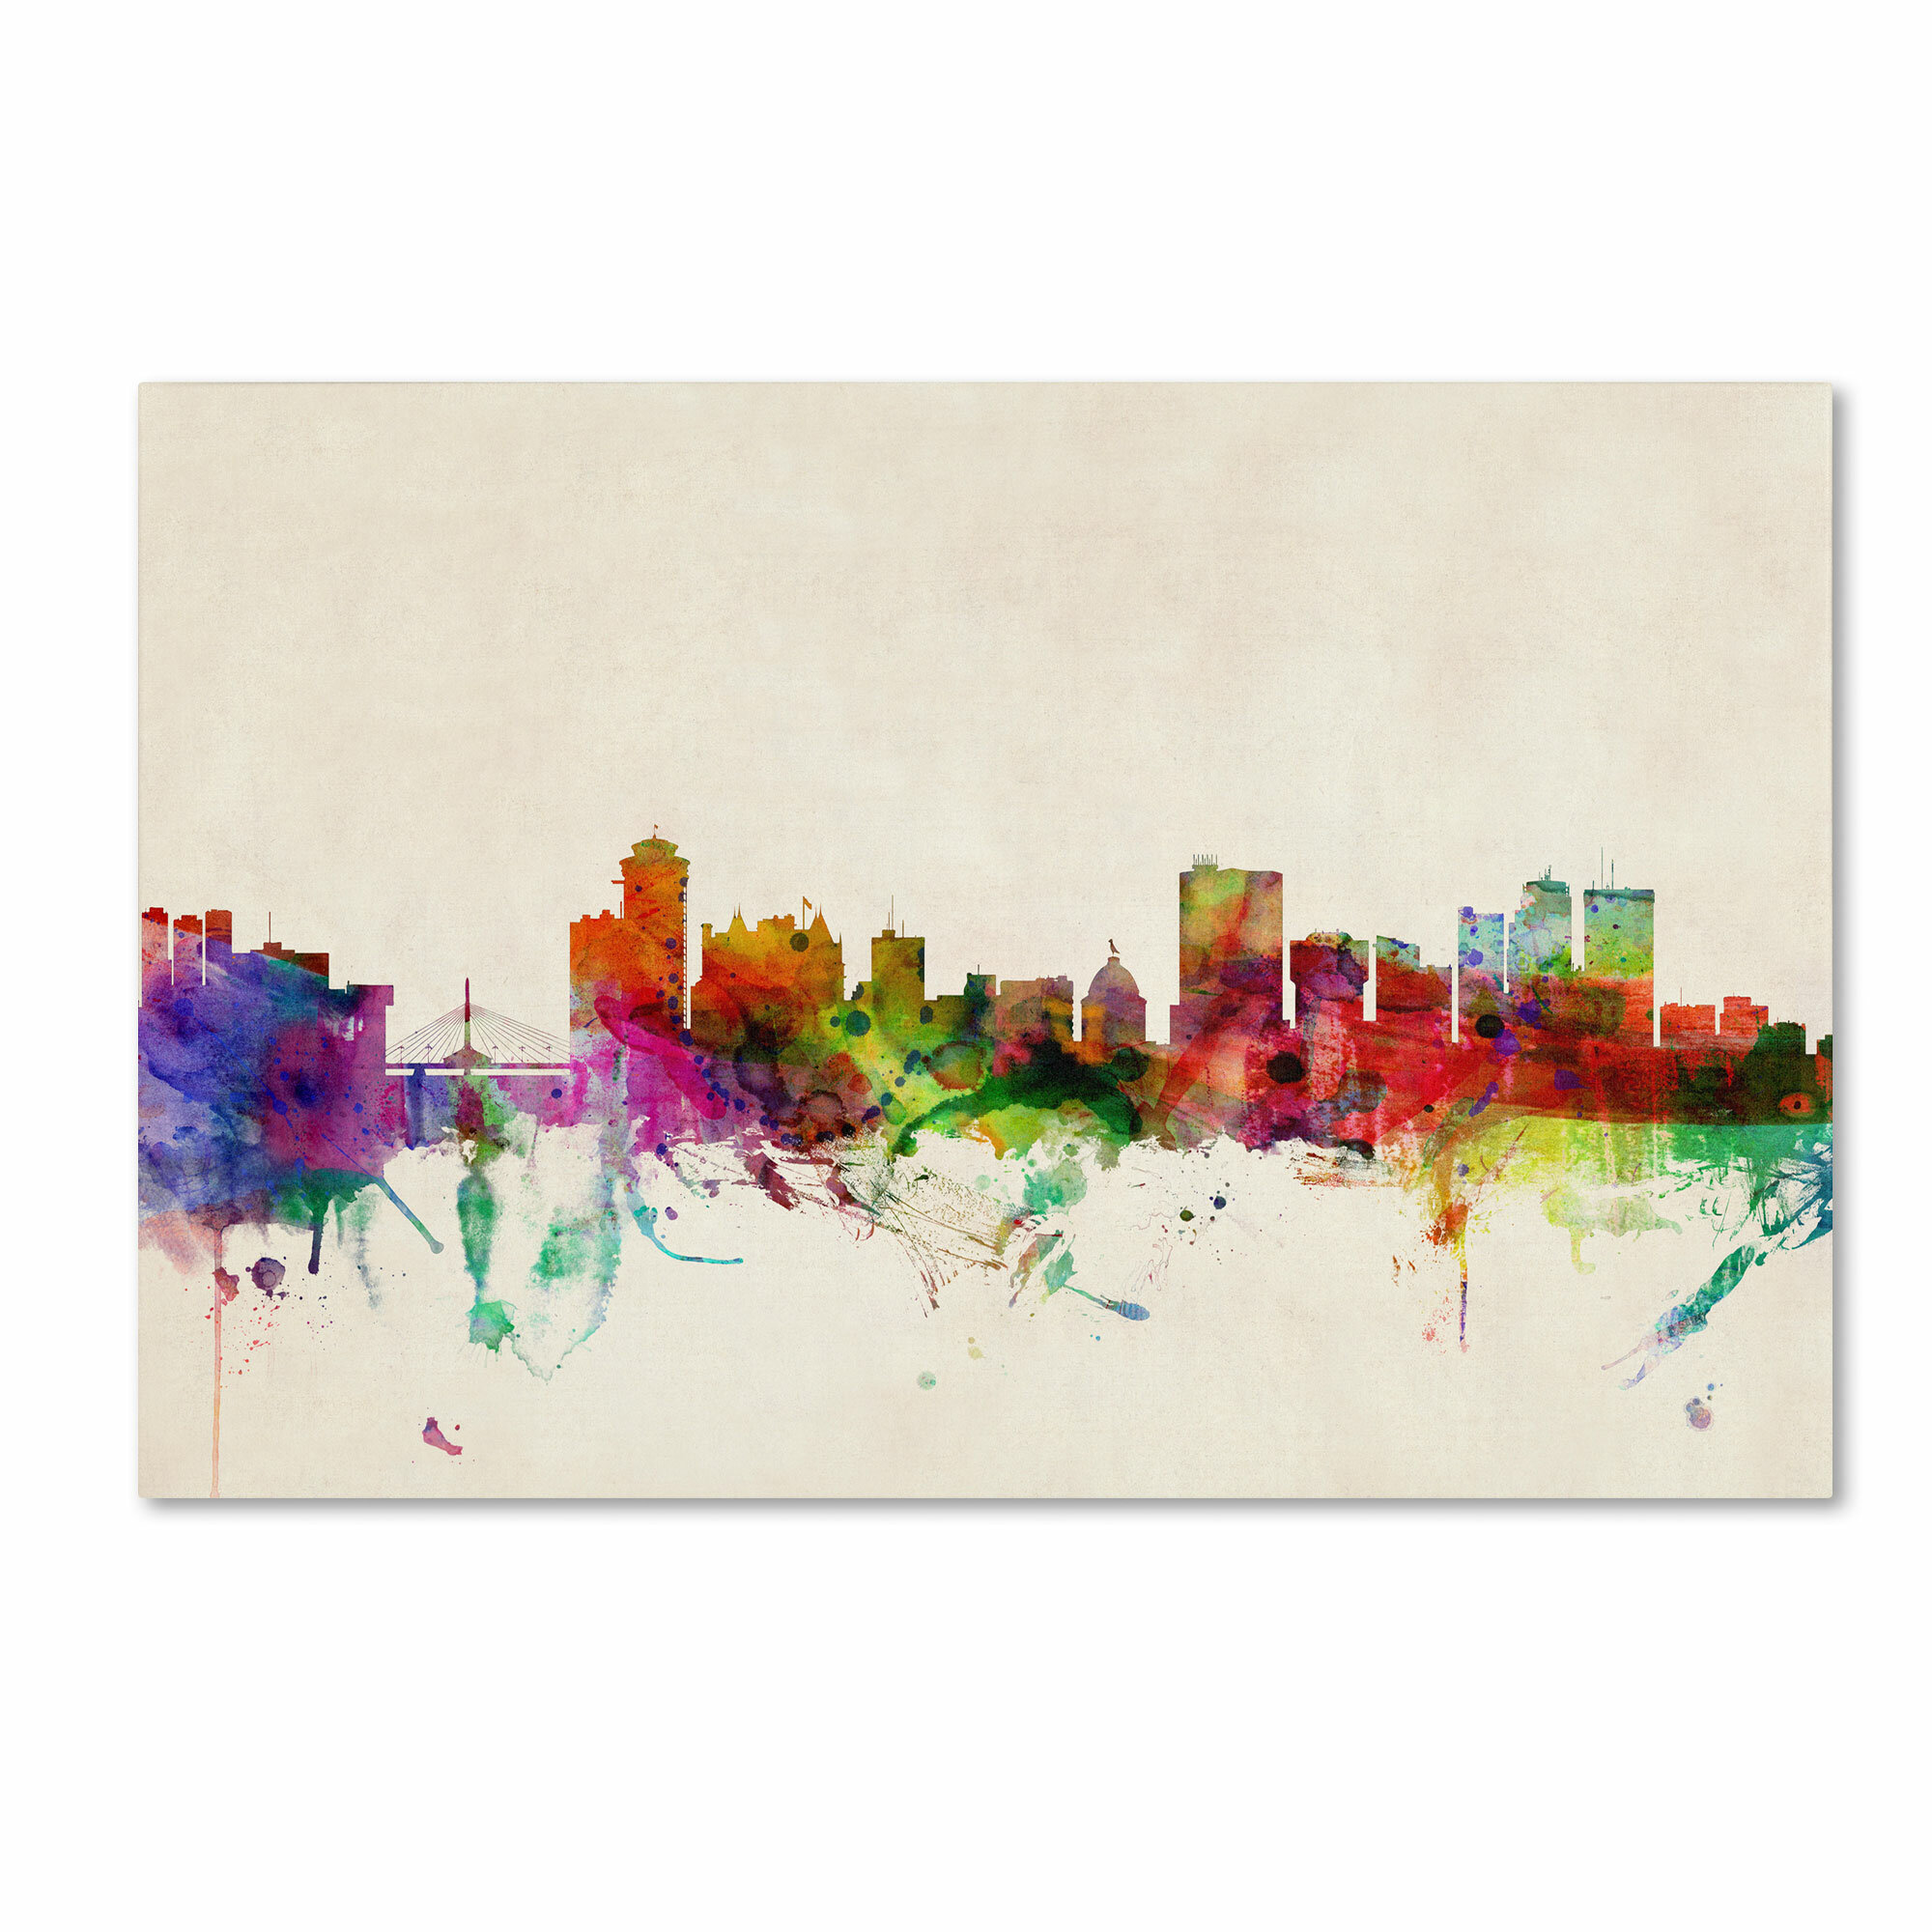 Trademark art winnipeg canada by michael tompsett painting print on wrapped canvas wayfair ca